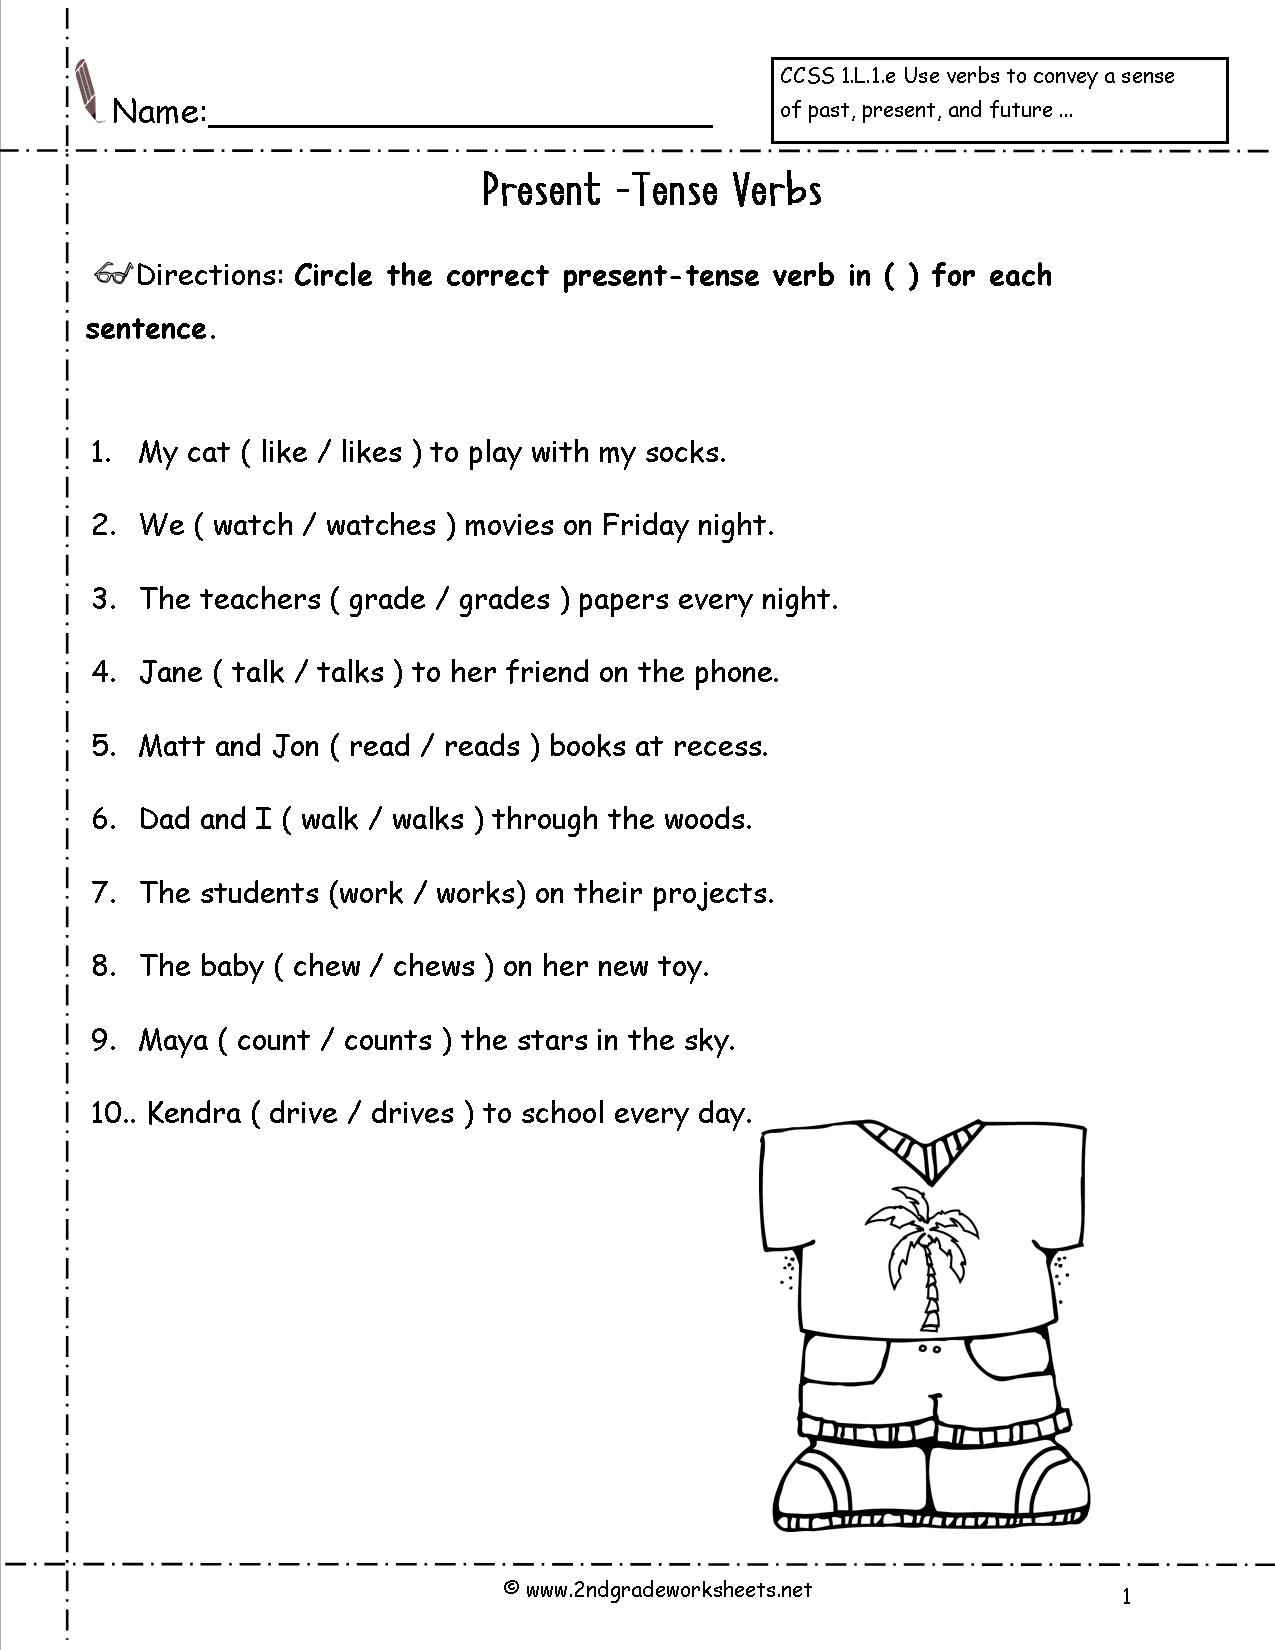 2 2nd Grade Past Tense Verbs Worksheets